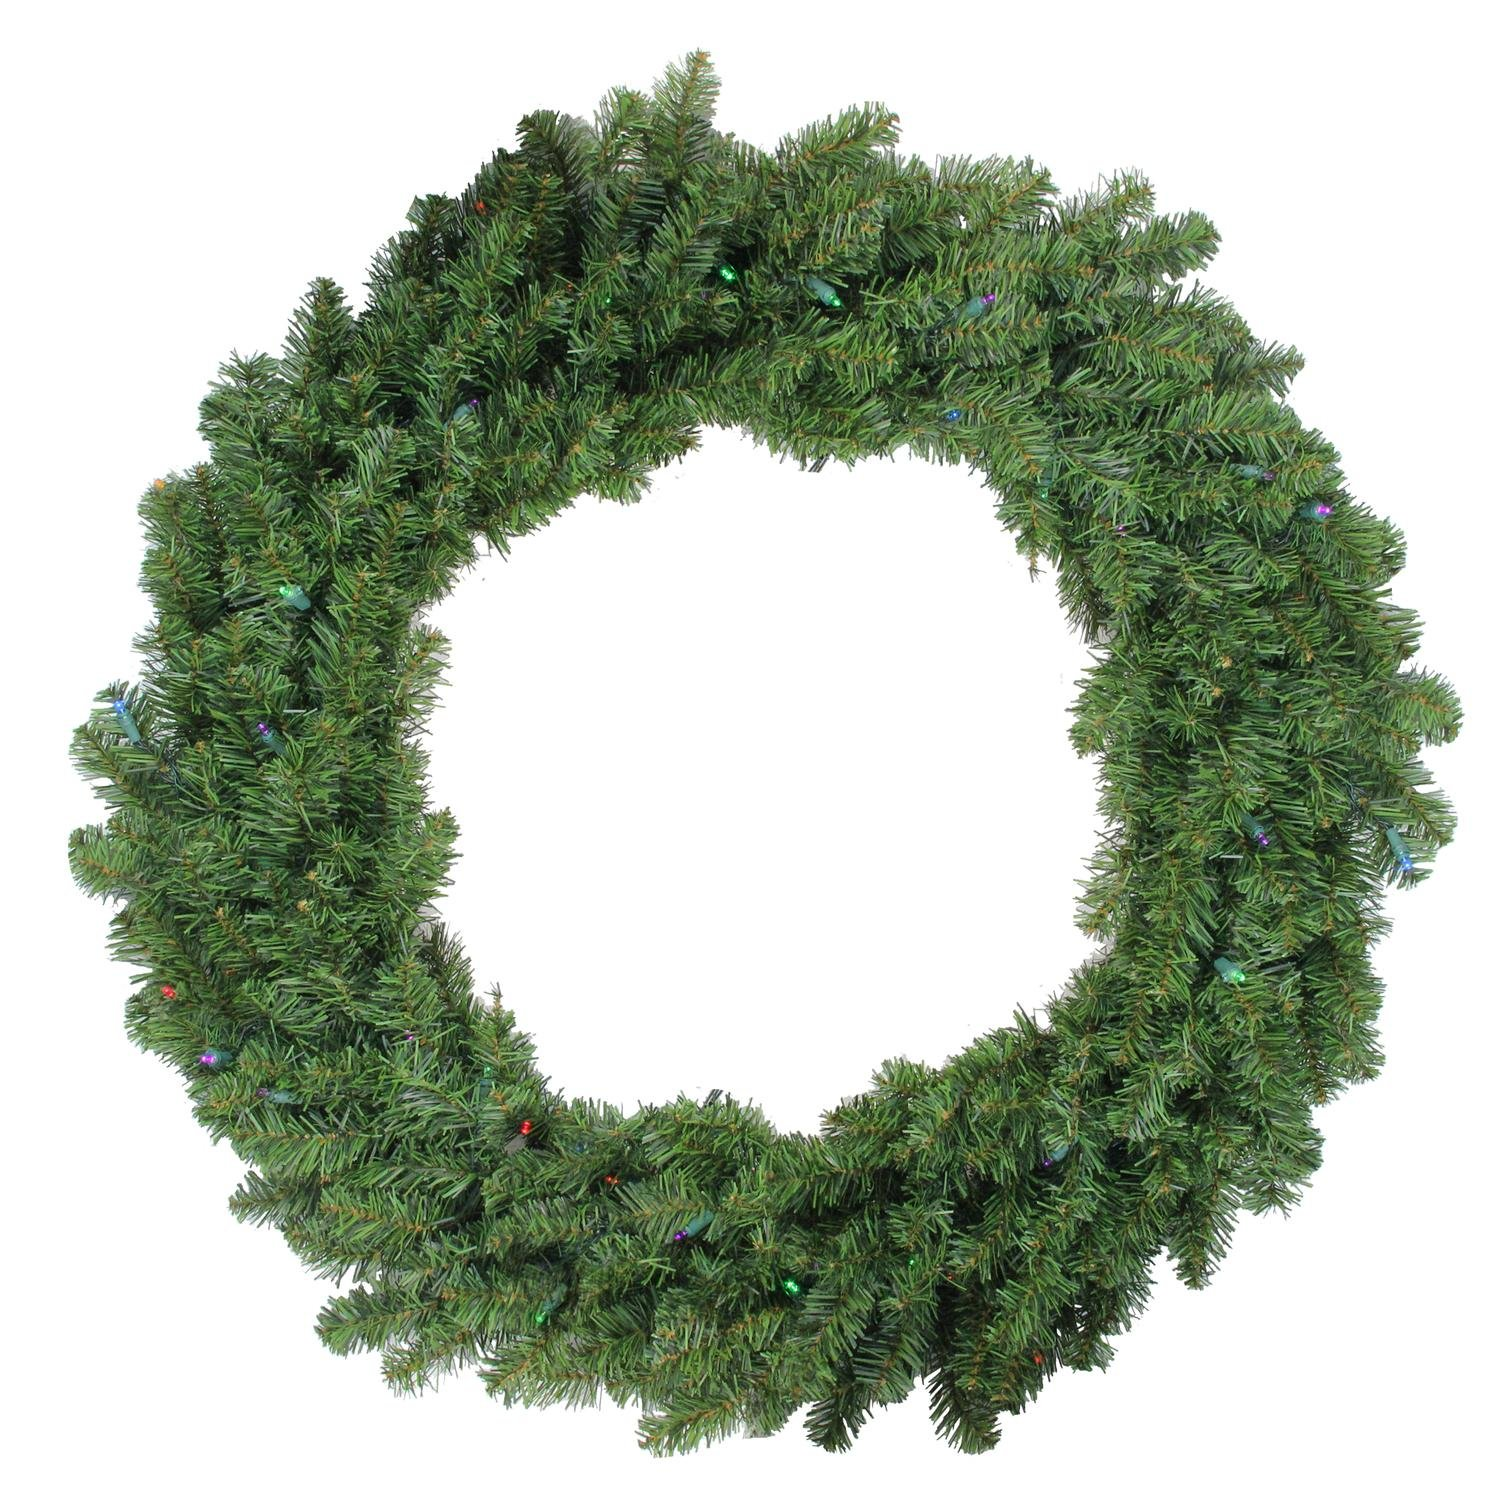 Darice 36'' Pre-Lit Battery Operated Canadian Pine Christmas Wreath - Multi LED Lights